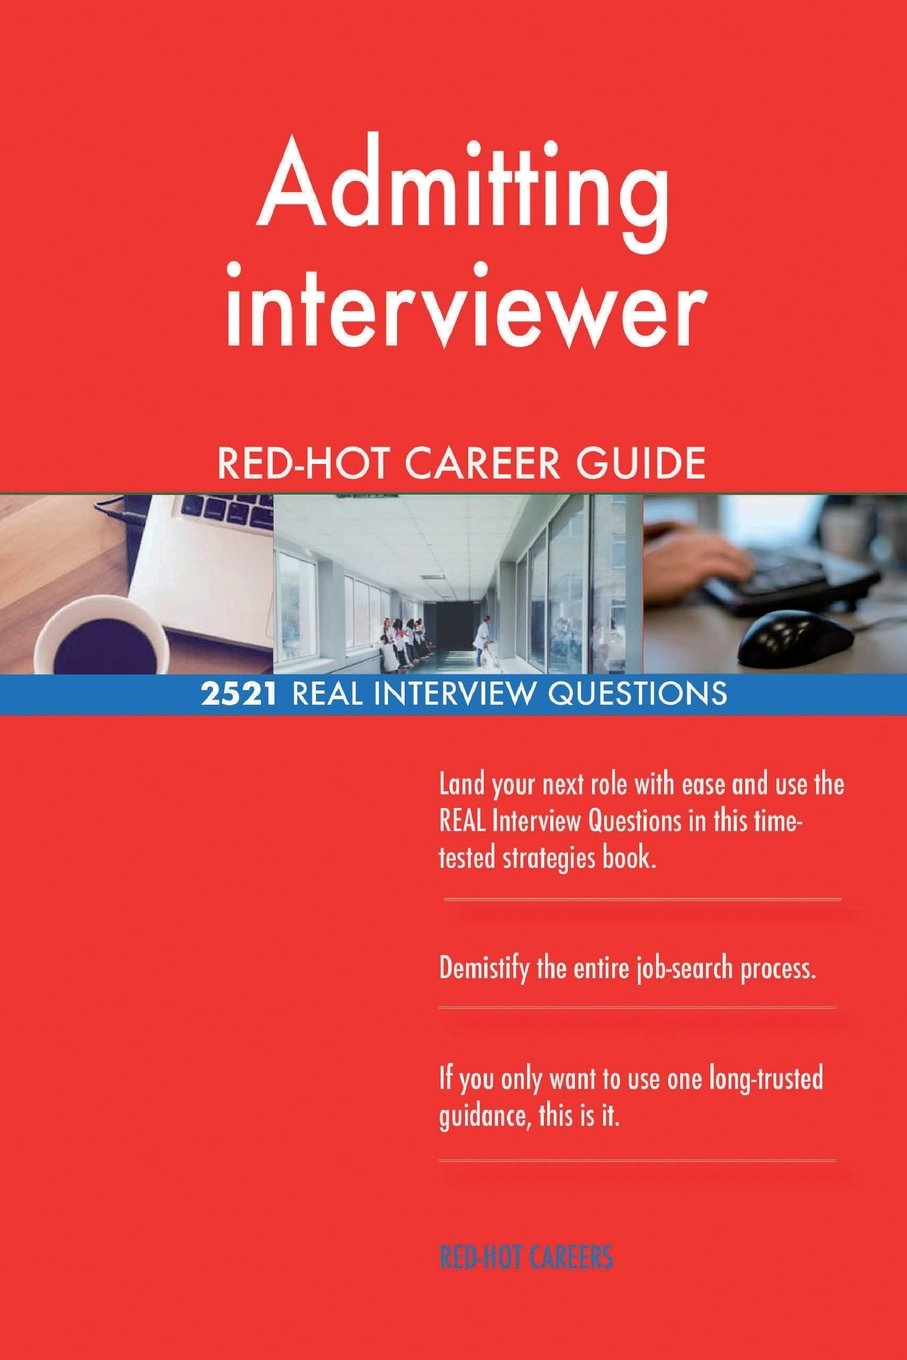 Admitting interviewer RED-HOT Career Guide; 2521 REAL Interview Questions ePub fb2 book